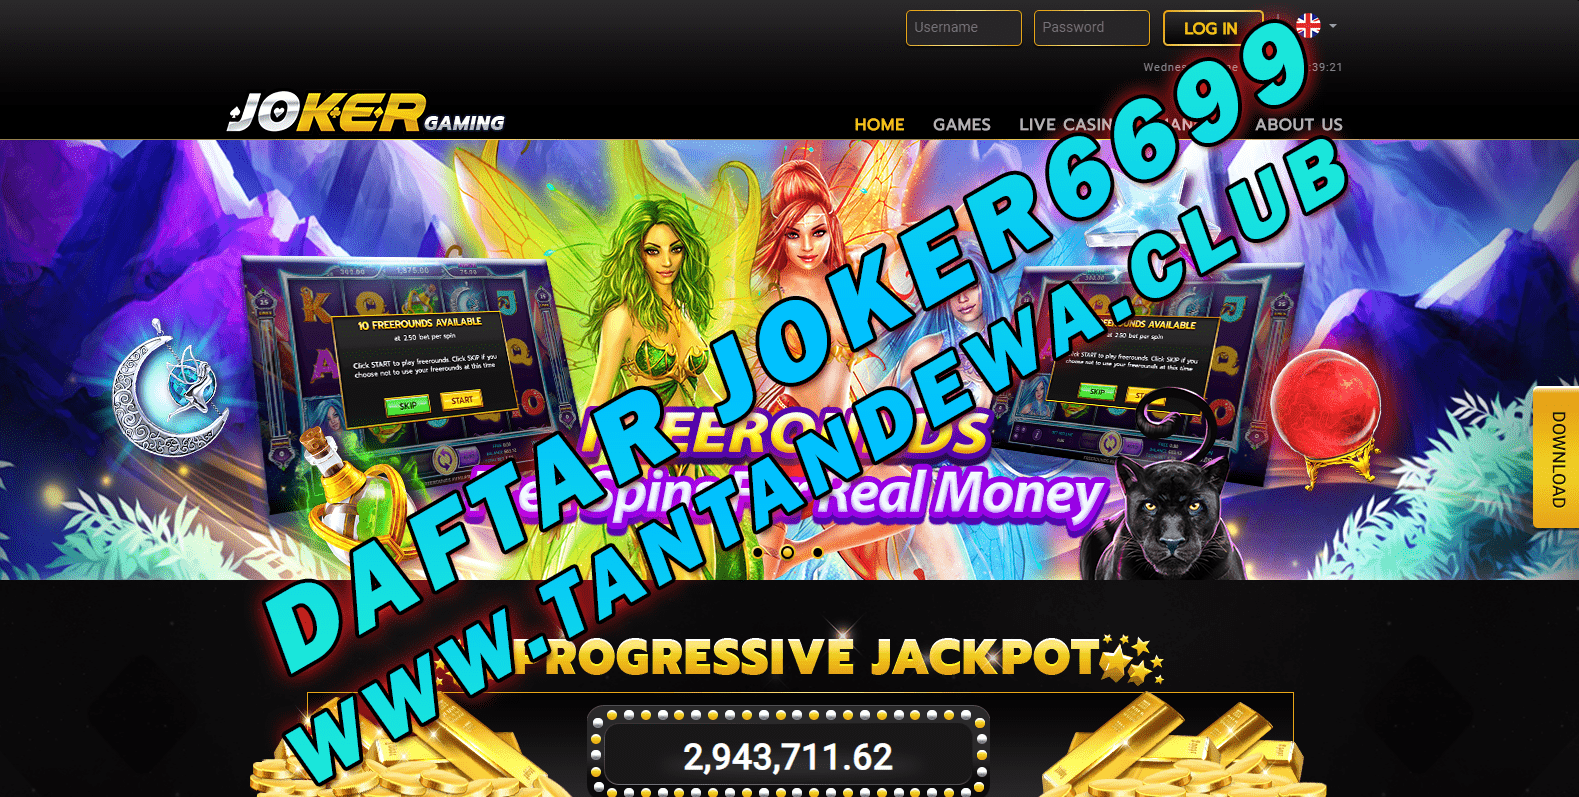 Joker6699, Joker6699.net, Login Joker6699, Link Joker6699, Link Alternatif Joker1888, Situs Joker6699, Download Joker6699, Daftar Joker6699, Joker6699 apk, Live chat joker6699